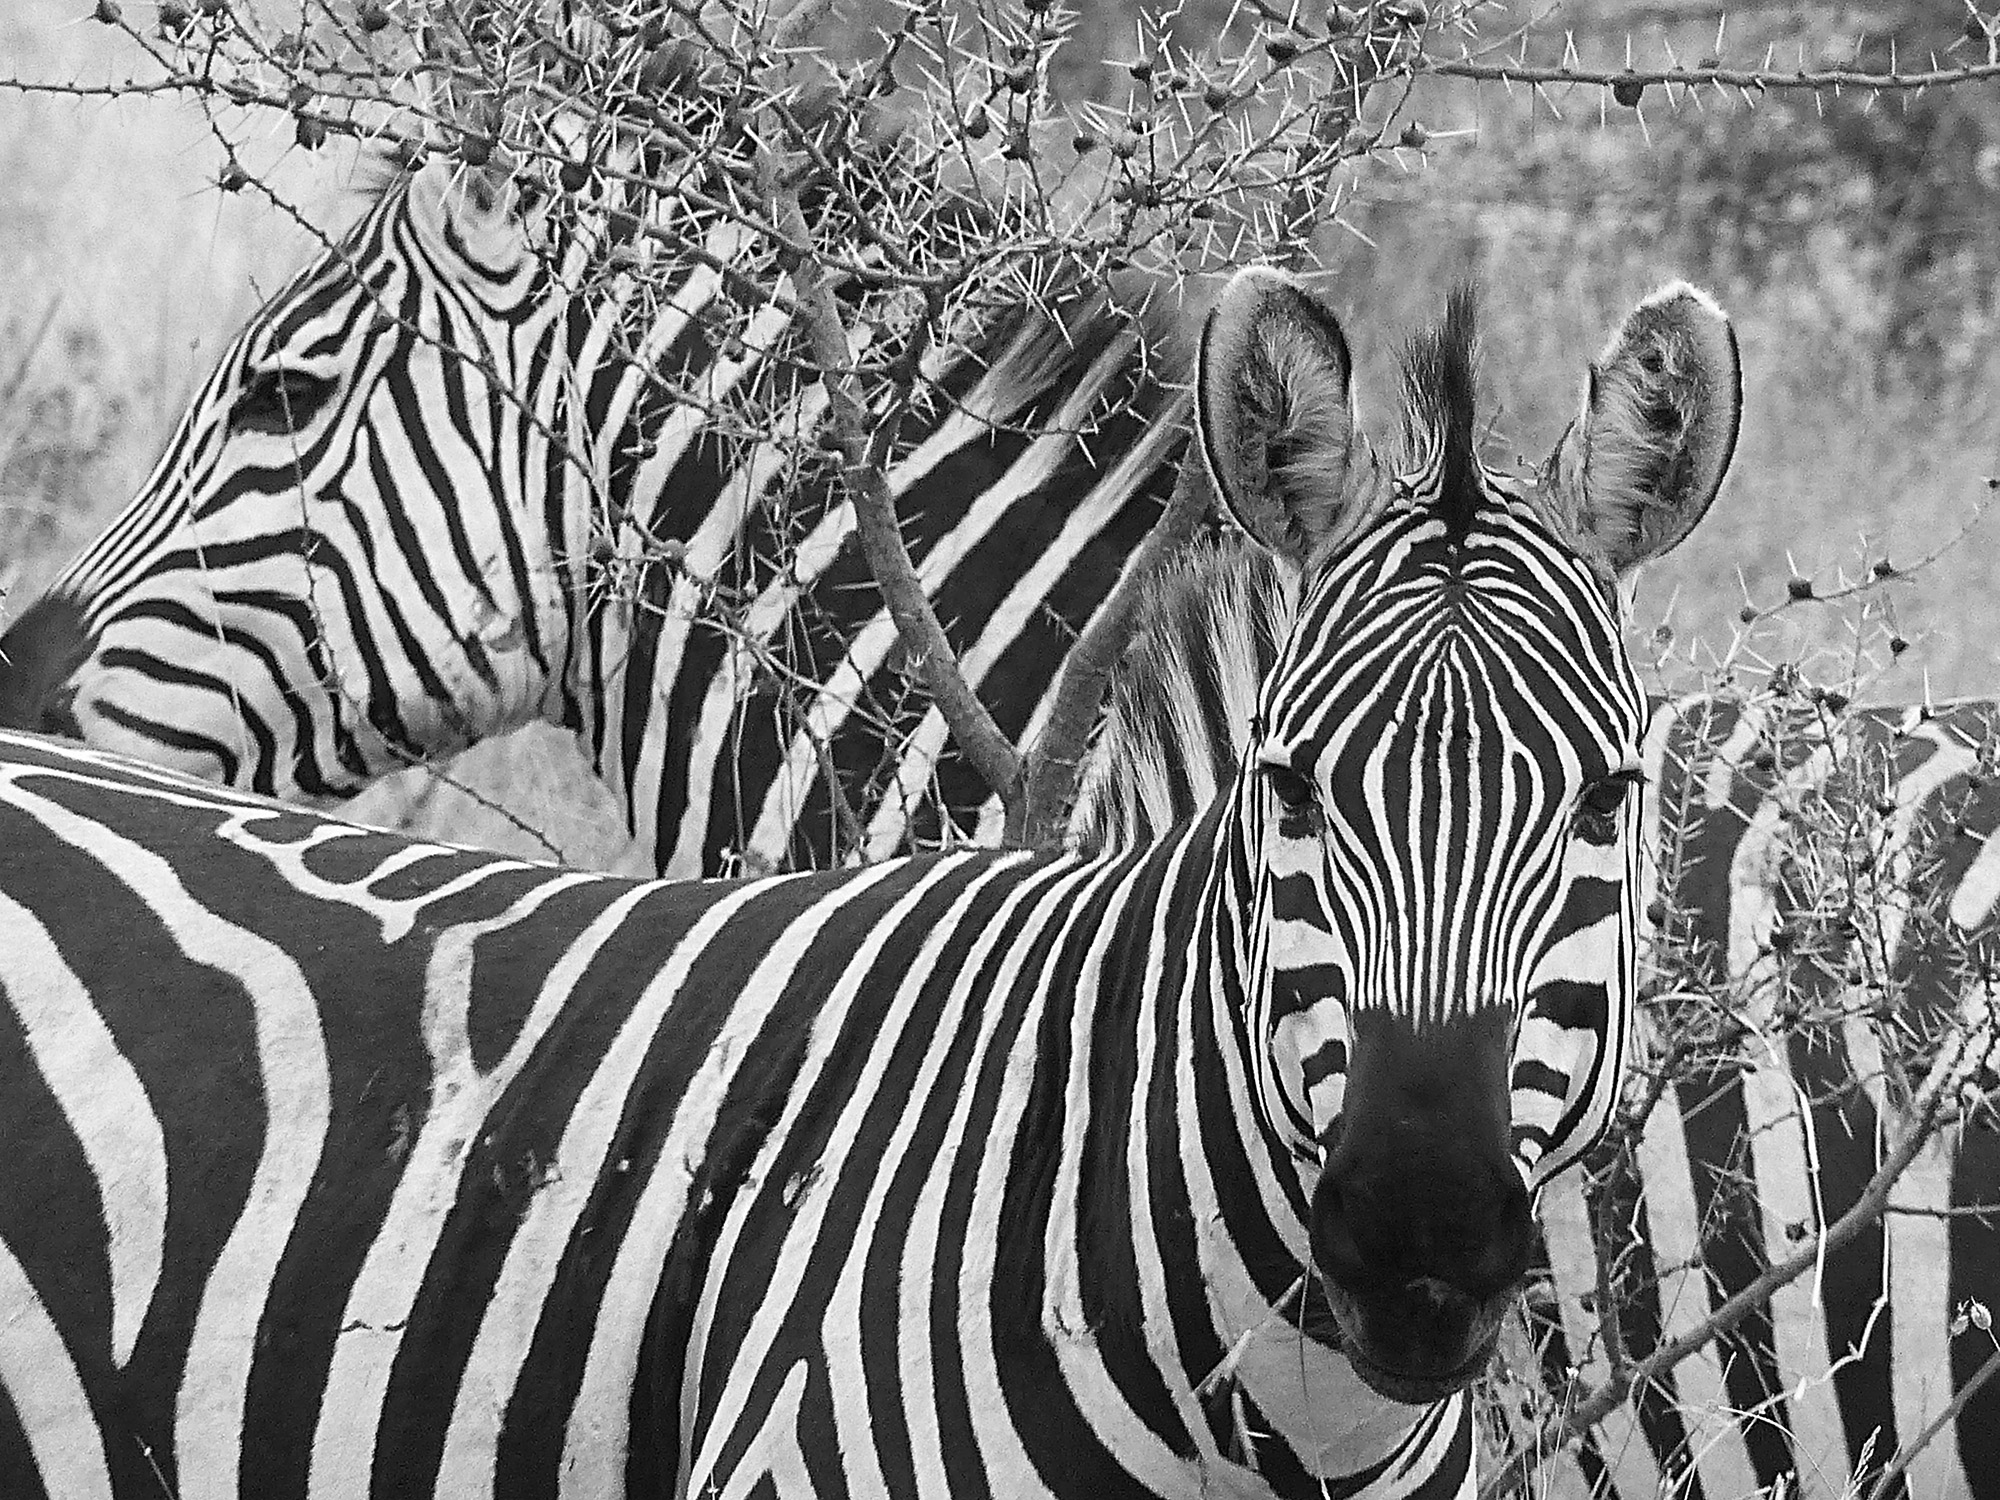 Manyara Zebras in the Acacias